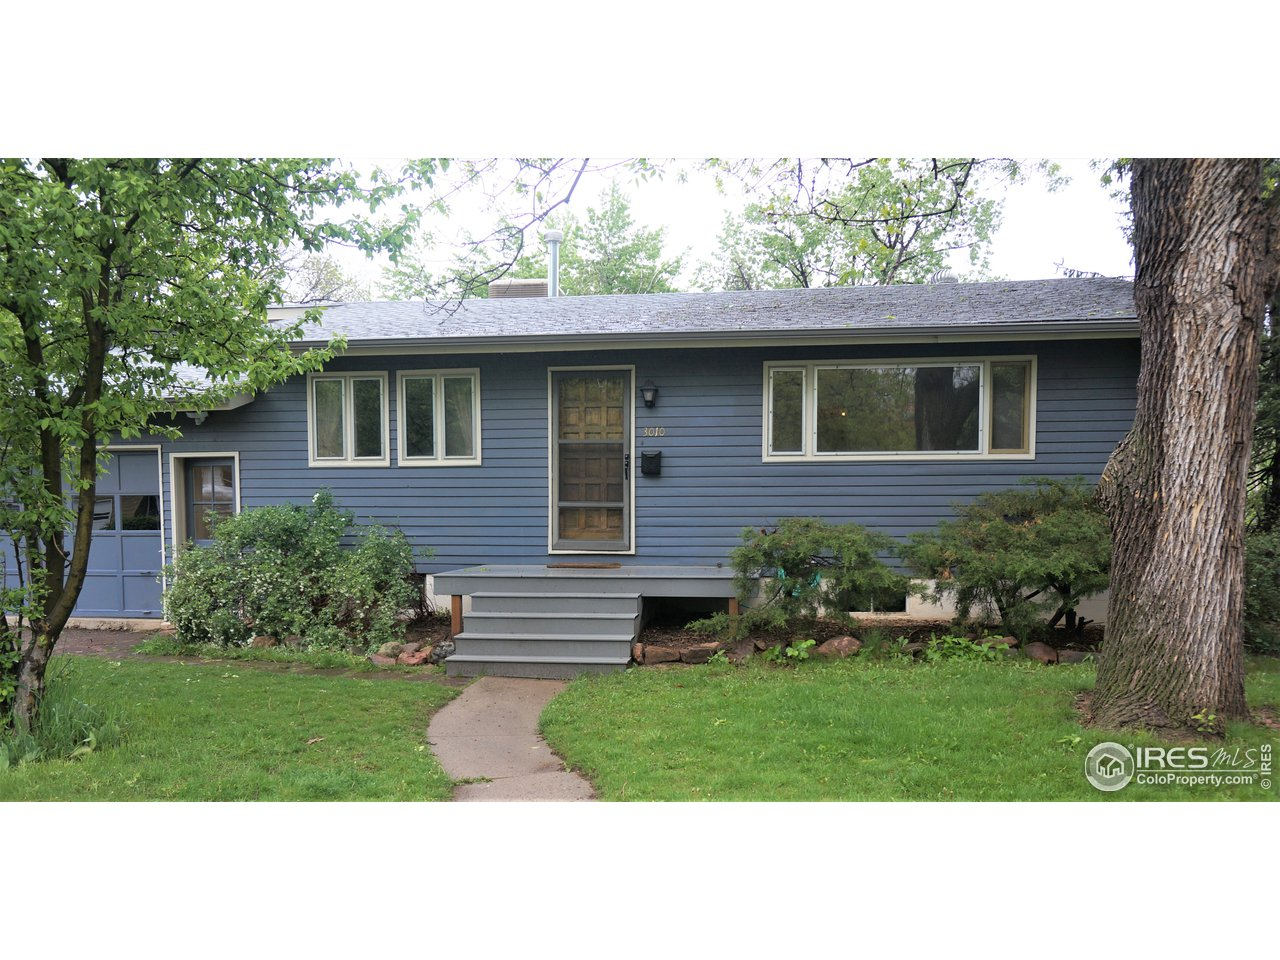 3010 14th St, Boulder CO 80304